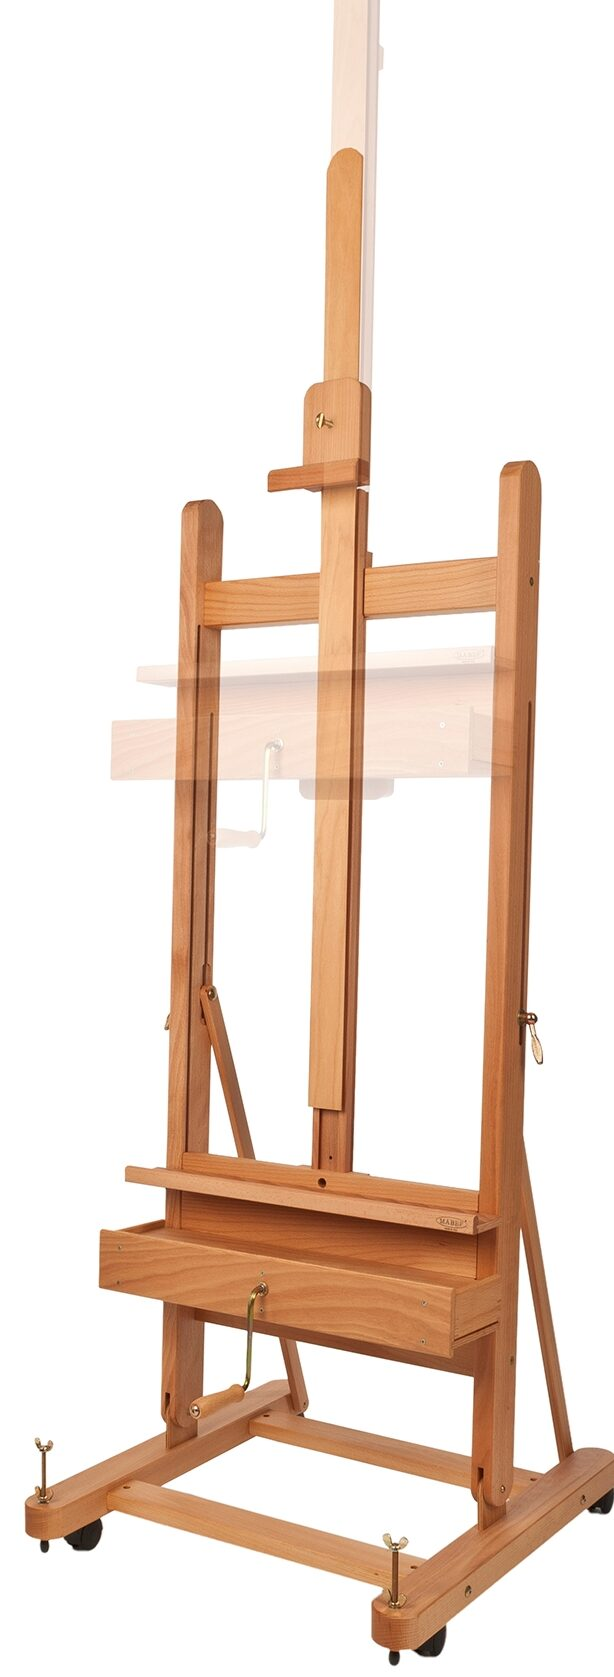 Mabef M-05 Studio Easels are available via our warehouse and online at The PaintBox, home of the widest range of traditional and progressive Art Supplies in Adelaide. At The PaintBox we source and stock quality art supplies which we import directly. This means that you have access to a greater variety and pay less. These are perfect for any artists from amateur to professional. They are also perfect for any budget size. Check out our loyalty rewards programme, which makes your artistic ambitions achievable. At these prices why not give these a go. Be sure to check out our other fabulous finds on our website and start saving today. Our knowledgeable staff at The PaintBox can guide you through our carefully selected ranges of art supplies for all applications. This is only a small selection of our stock. We sell many brands, weights, and textures, in-store only. Please call 08 8388 7776 to enquire. We offer art tuition too! MABEF M-05 STUDIO EASELS CAN BE DELIVERED ANYWHERE WITHIN AUSTRALIA OR NEW ZEALAND